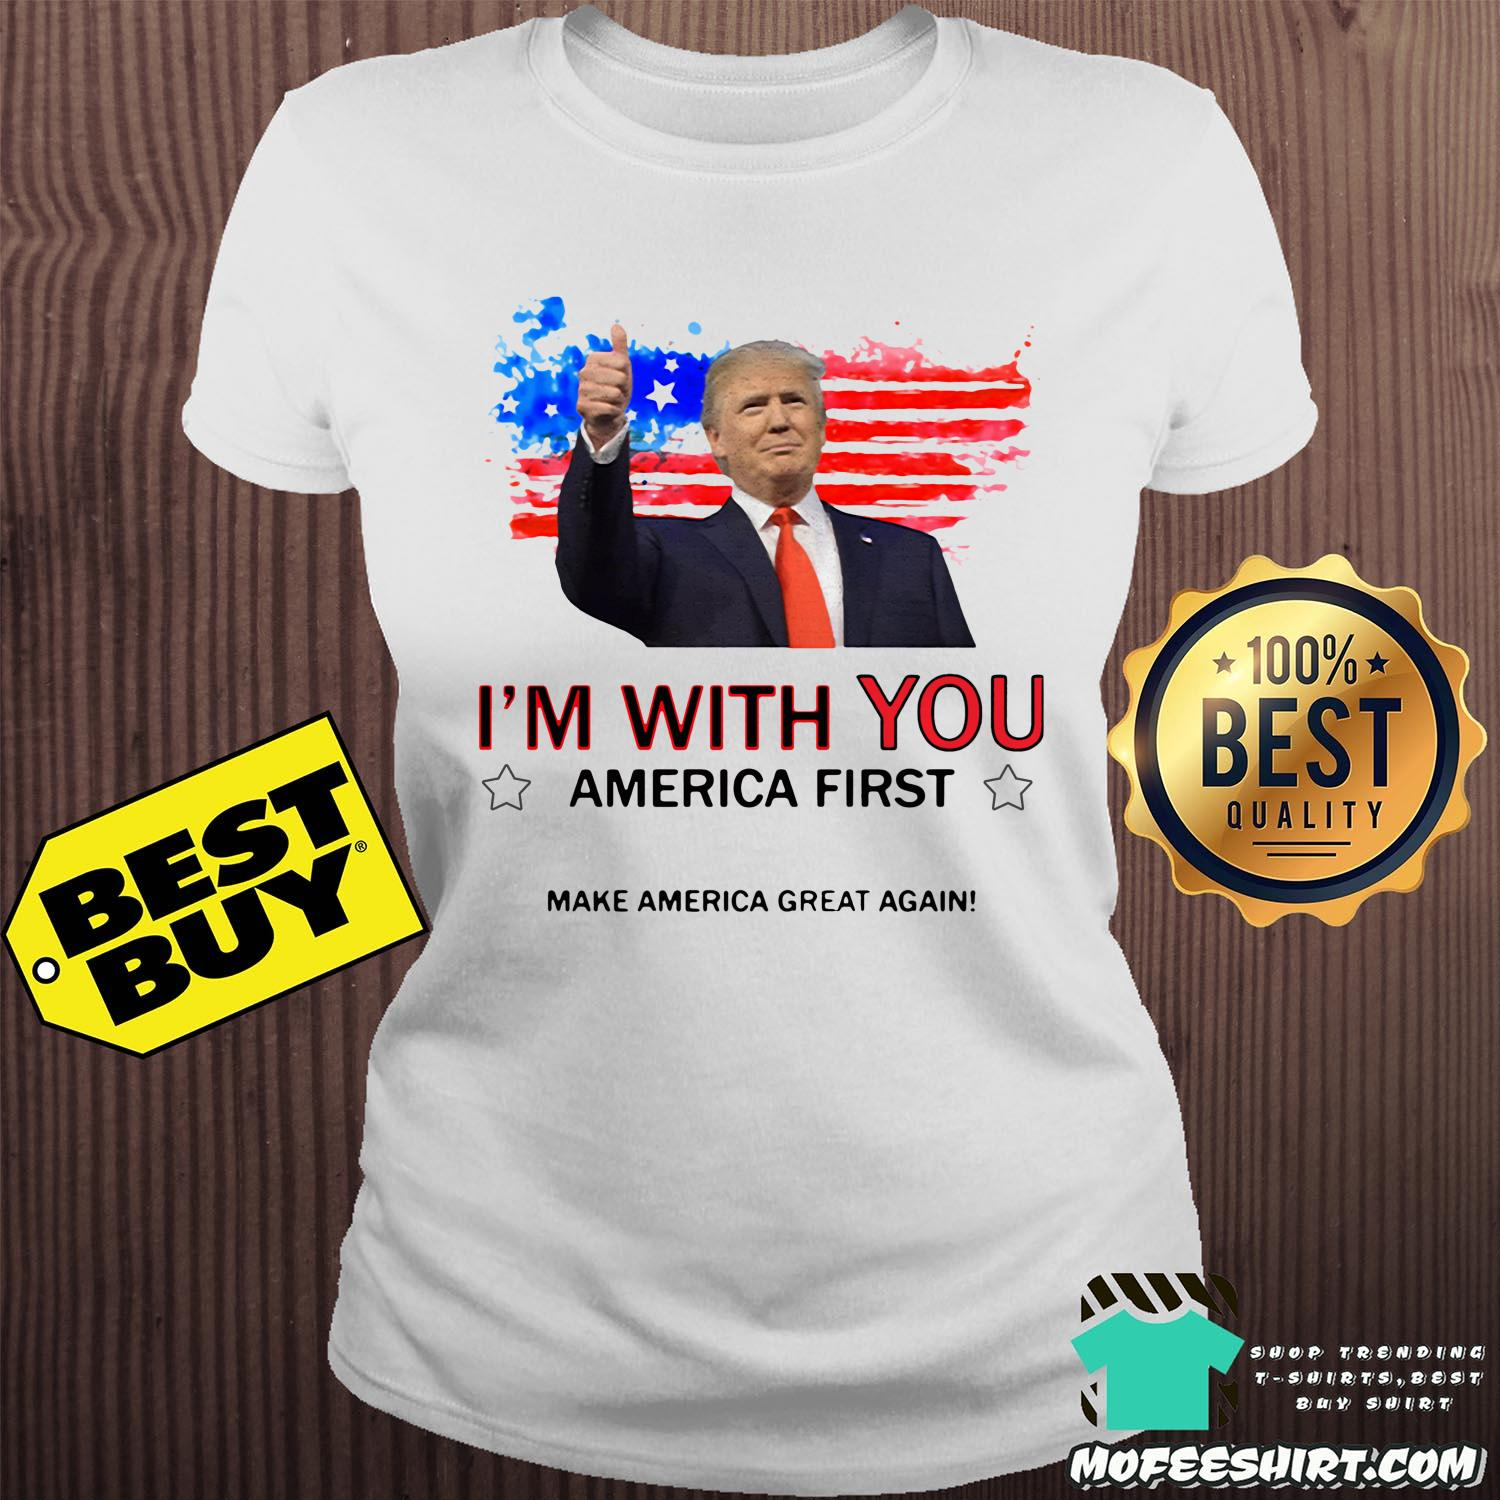 im with you america first make america great again donald trump ladies tee - I'm With You America First Make America Great Again Donald Trump Shirt